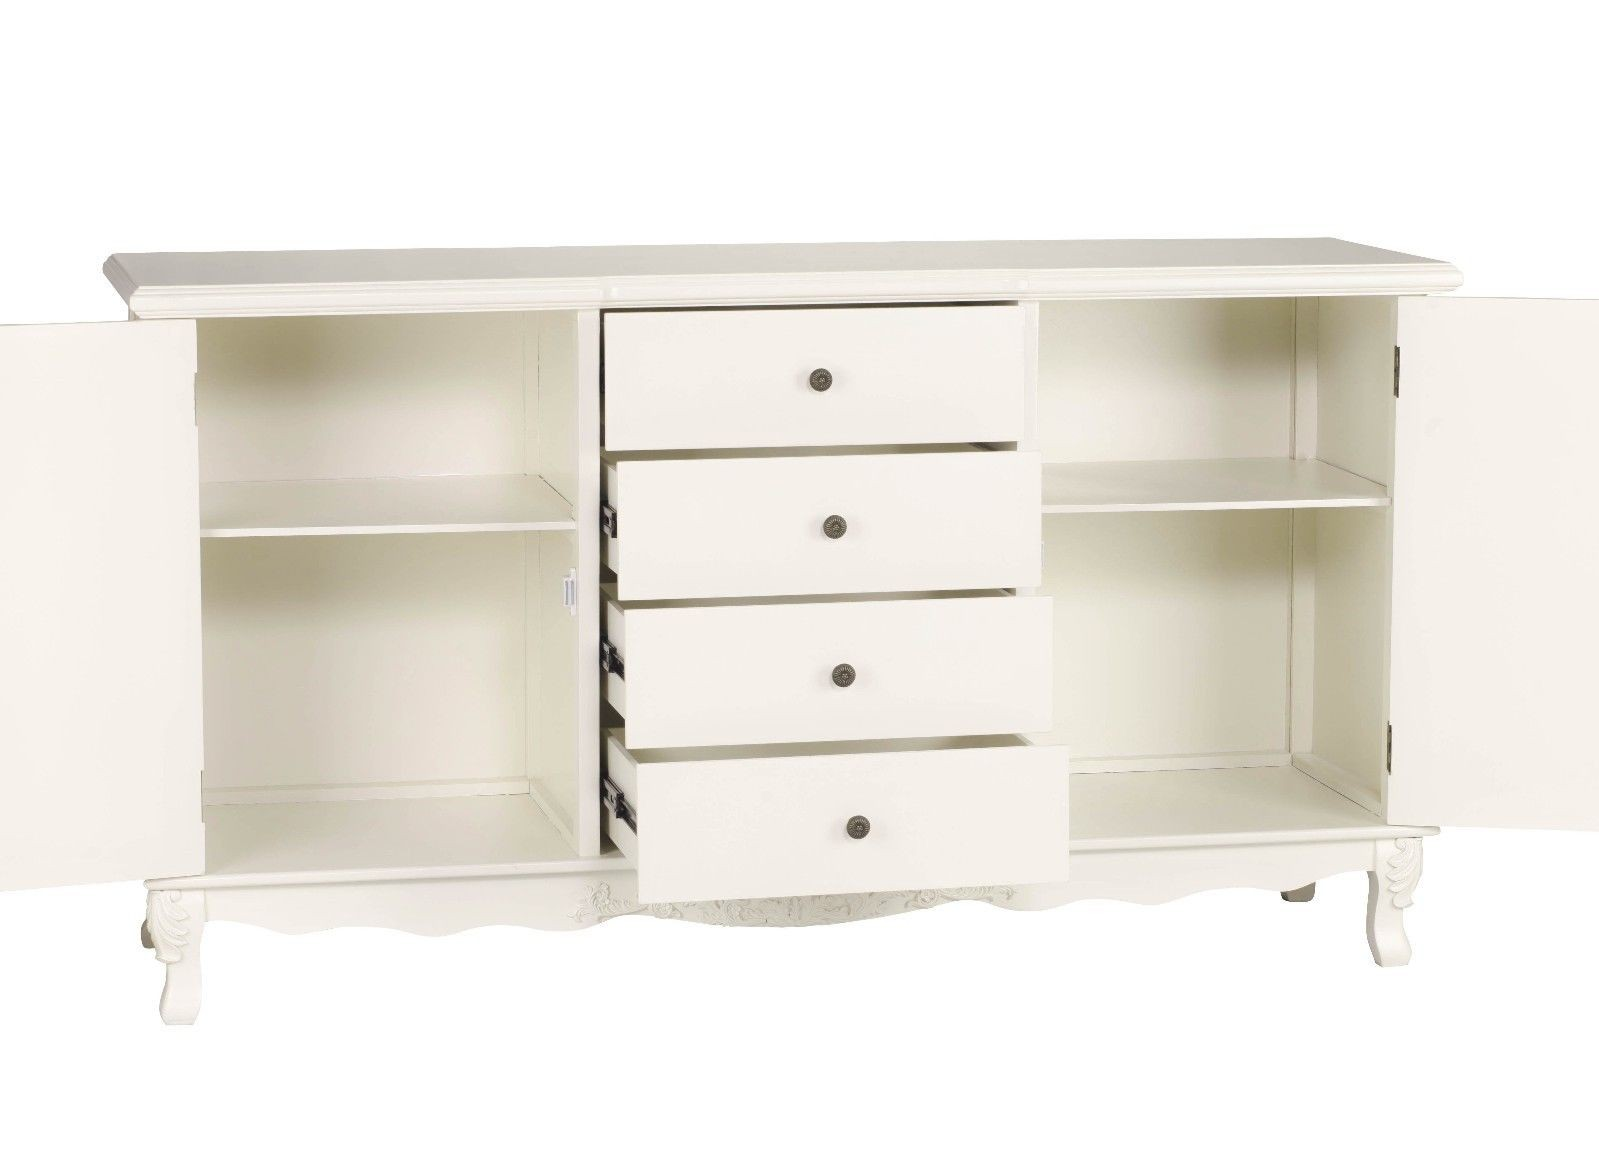 French Style Louis Cream Sideboard Furniture La Maison Chic Luxury Interiors